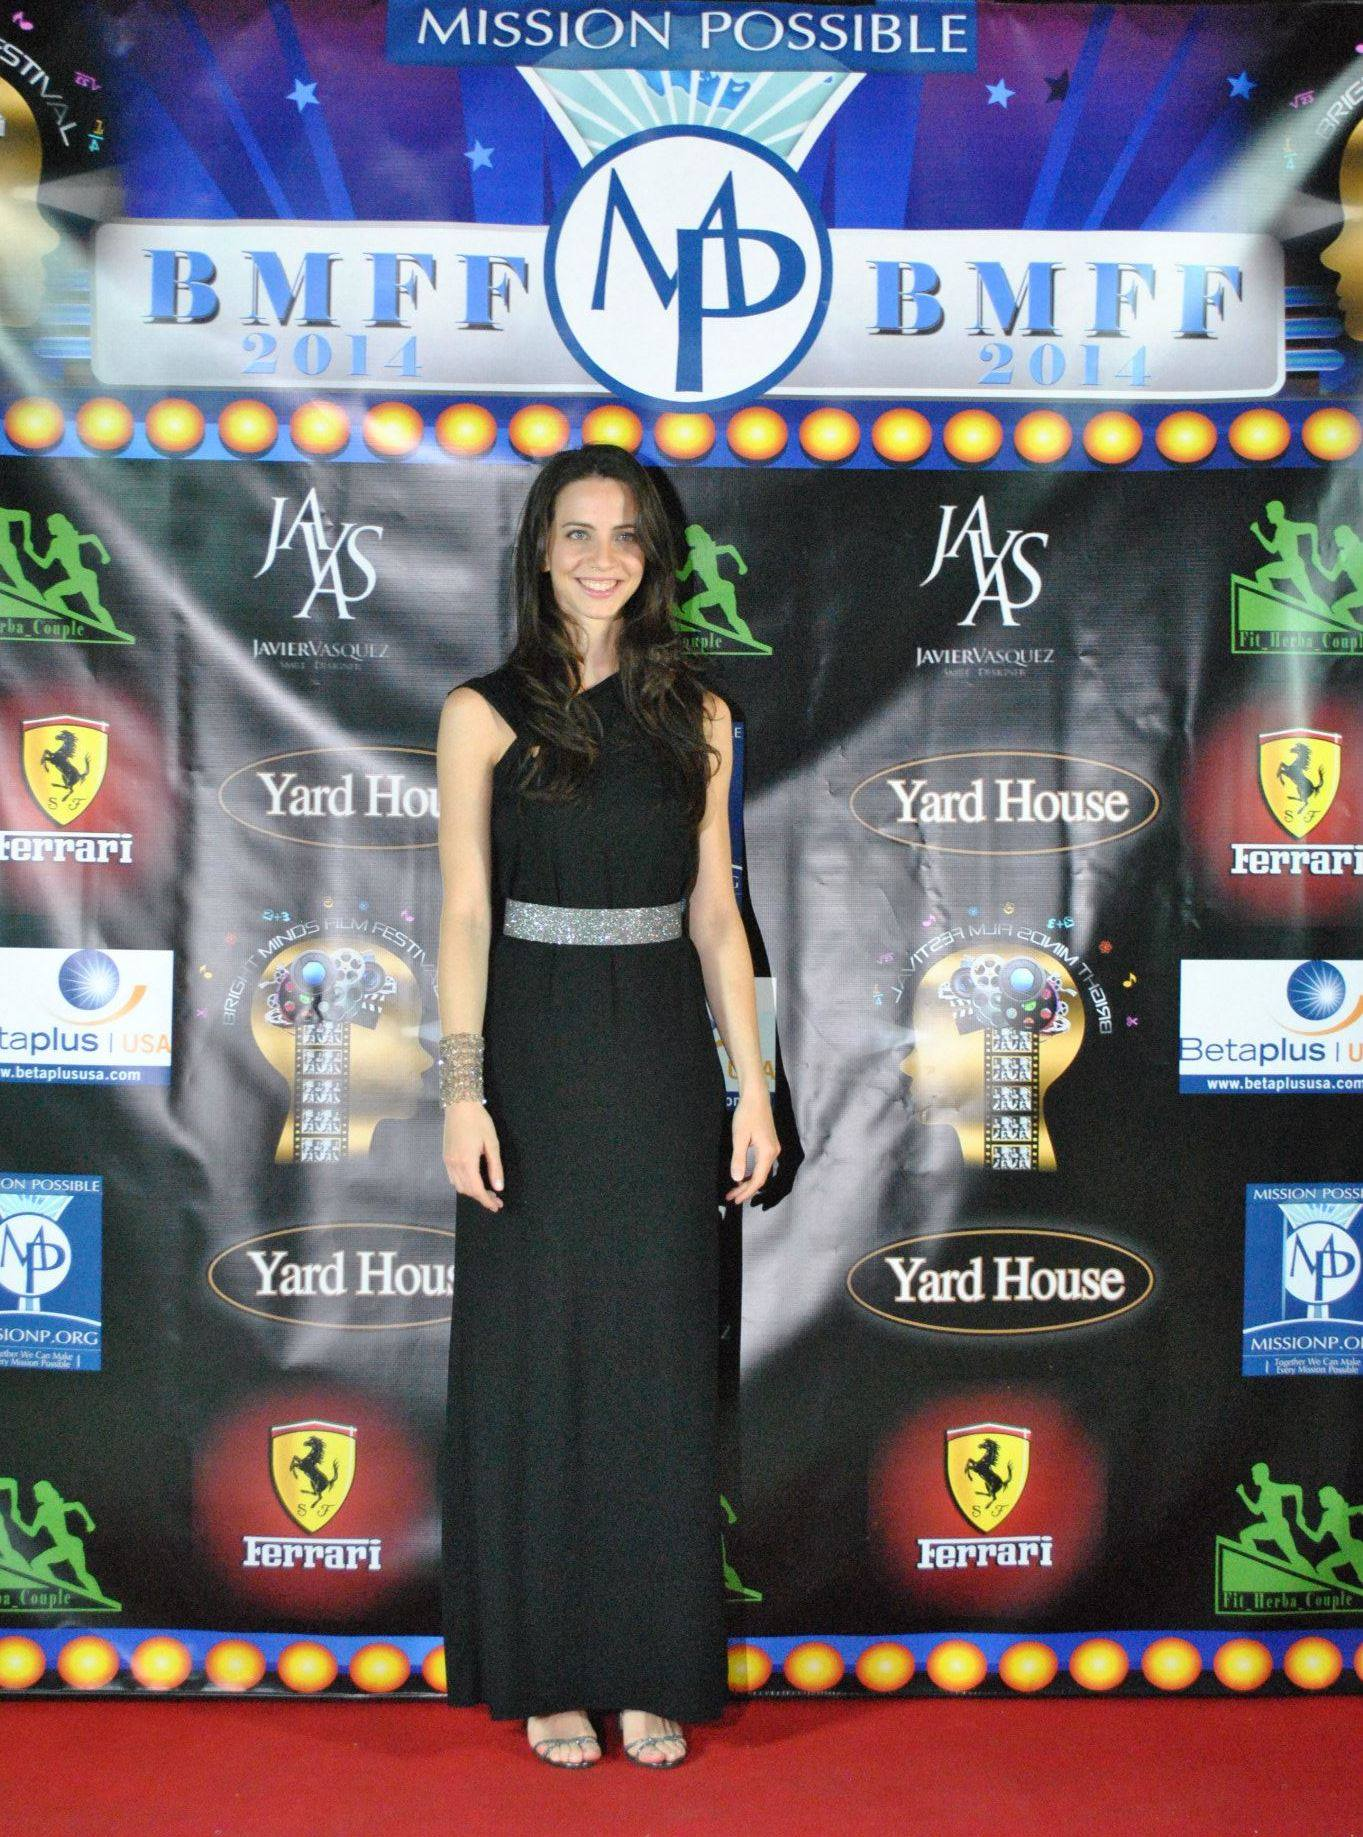 Bright Minds Film Festival 2014 Miami